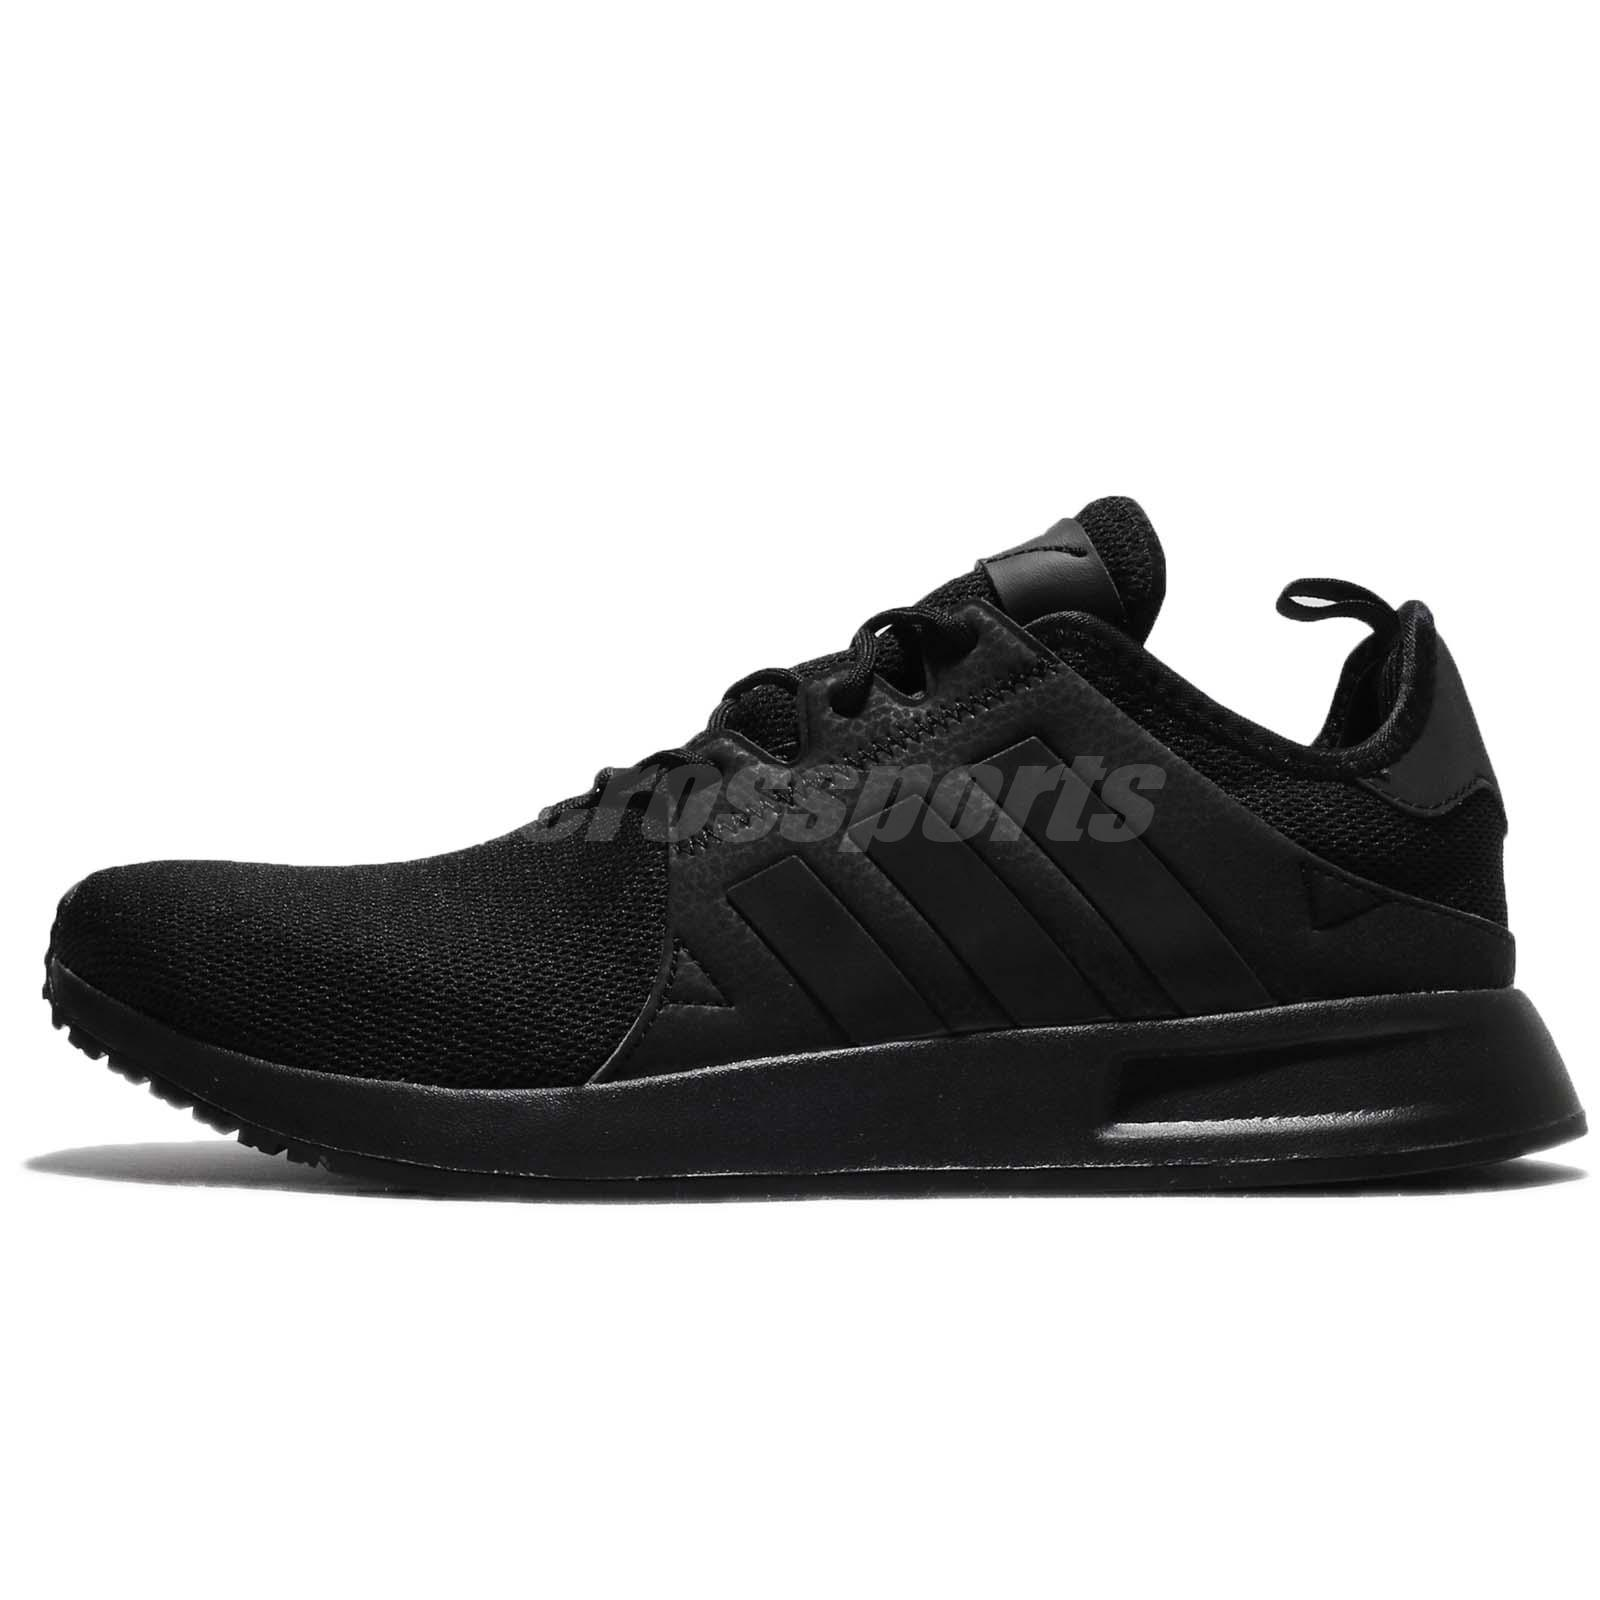 huge selection of 9e911 8acc9 Details about adidas Originals X_PLR Black Trace Grey Men Women Running  Shoes Sneakers BY9260